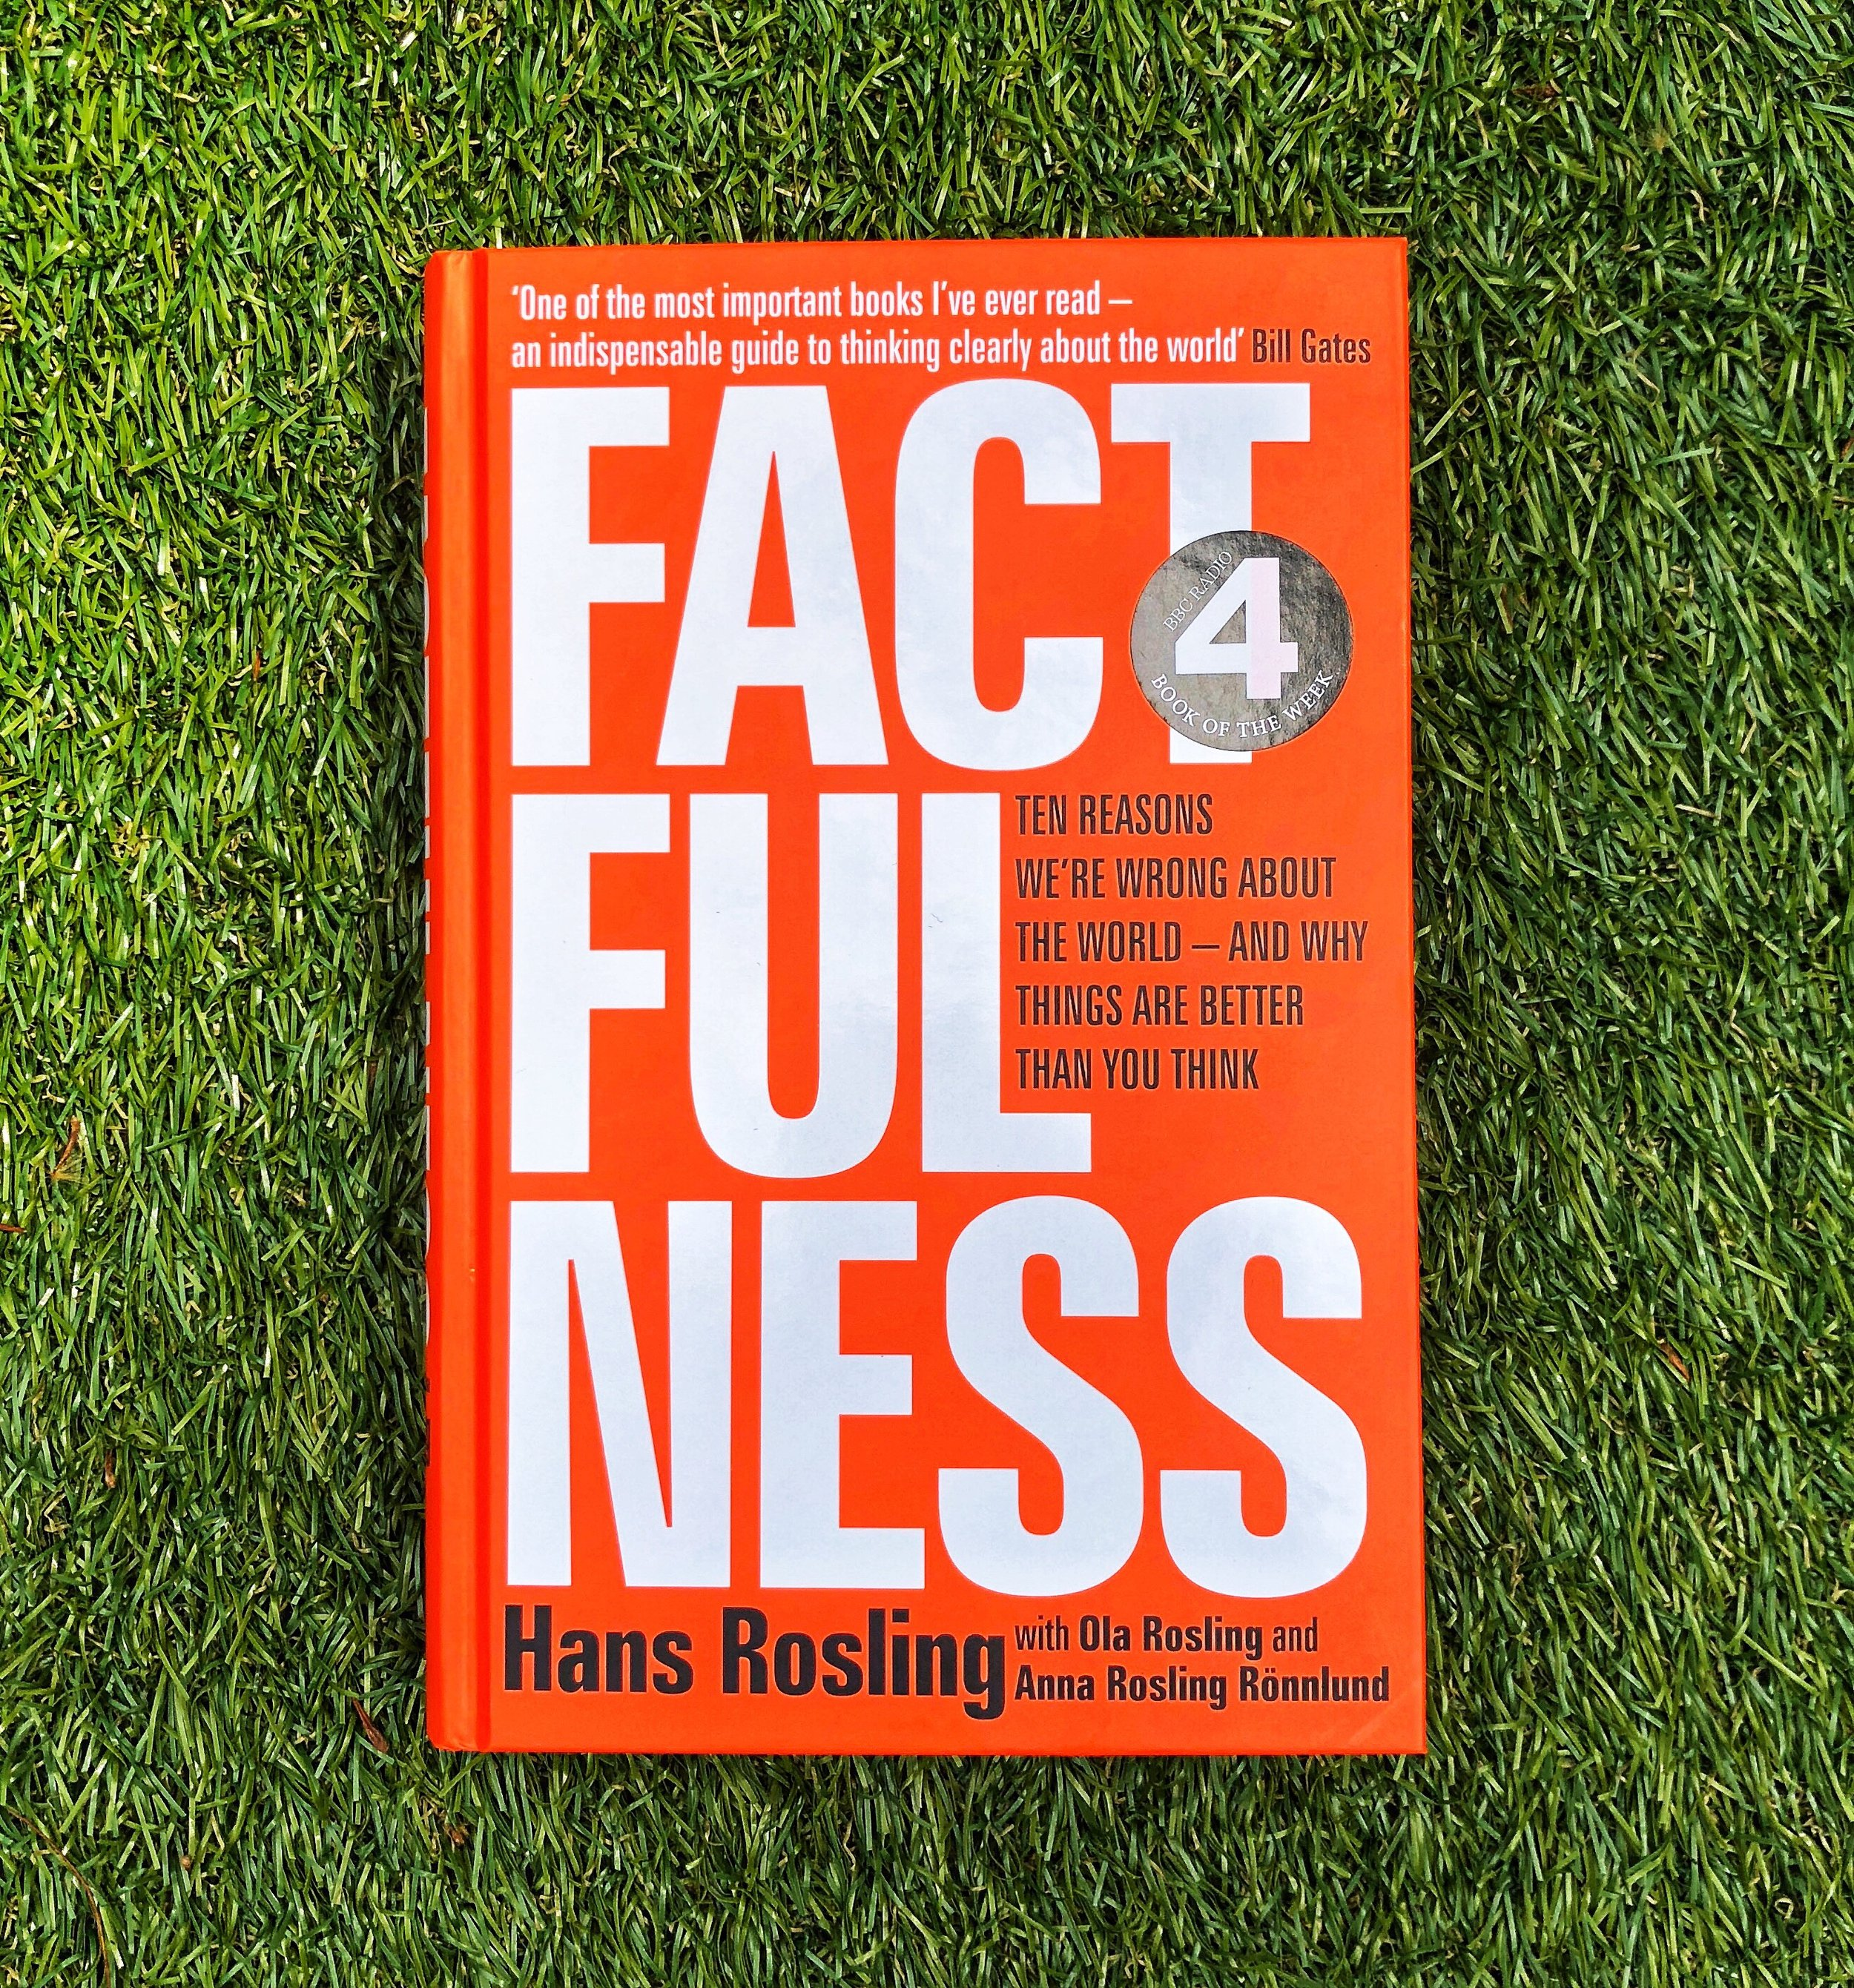 Sustainable Lifestyleconsultant - Factfulness - why facts matter by Hans Rosling.png